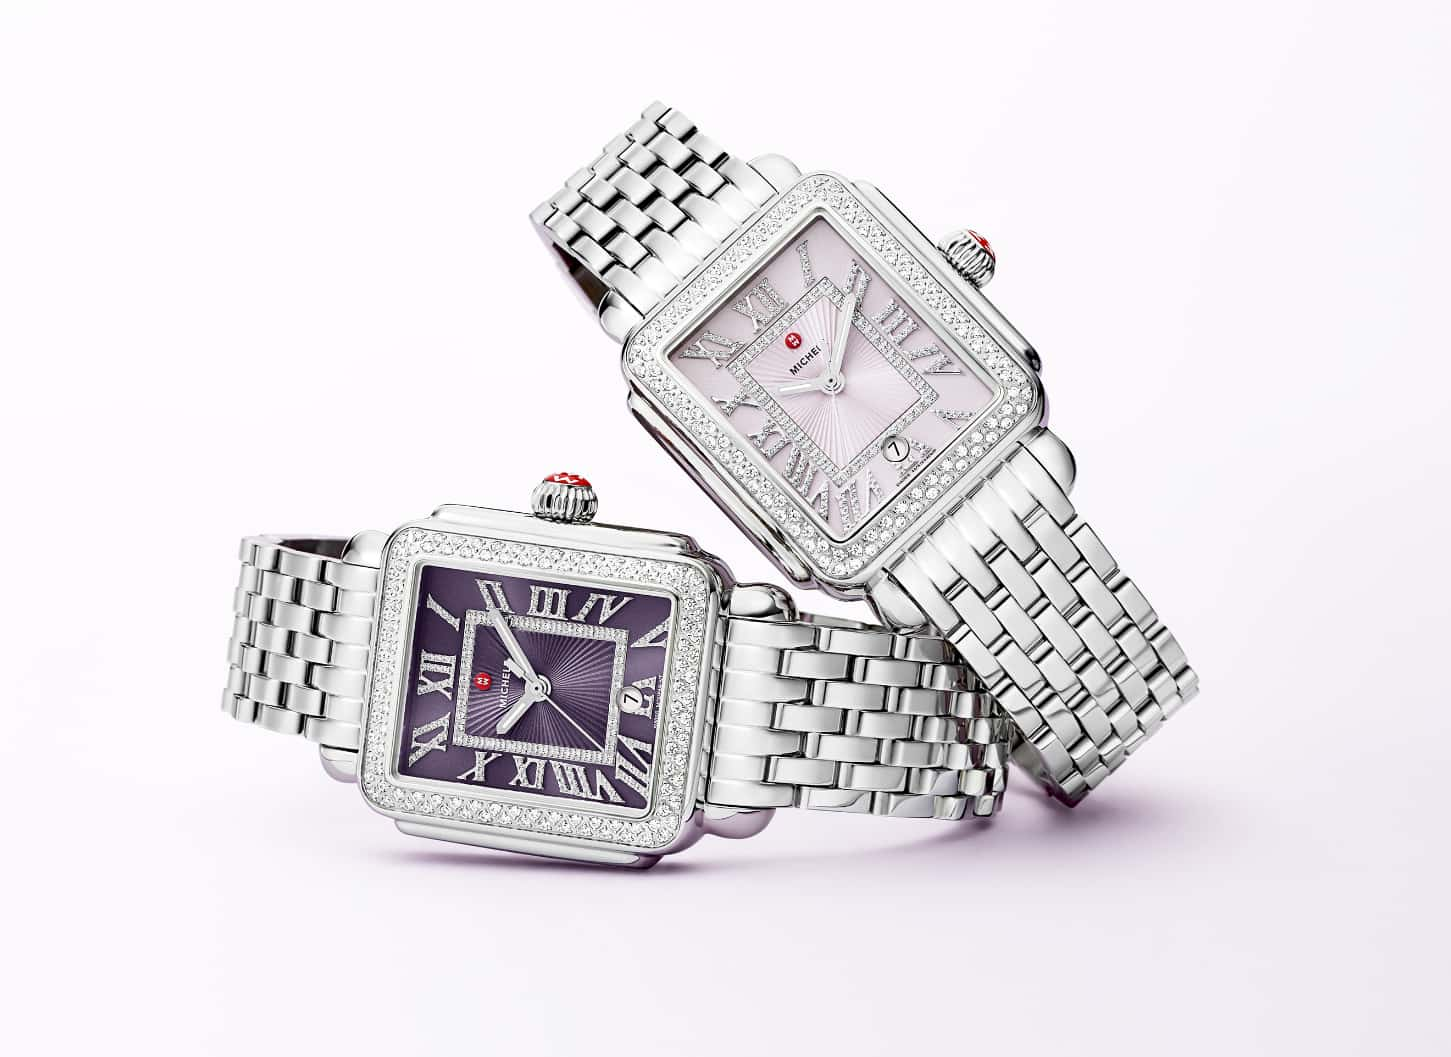 Two Deco Madison watches in stainless featuring lilac and violet dials and diamond-covered Roman numeral indexes.